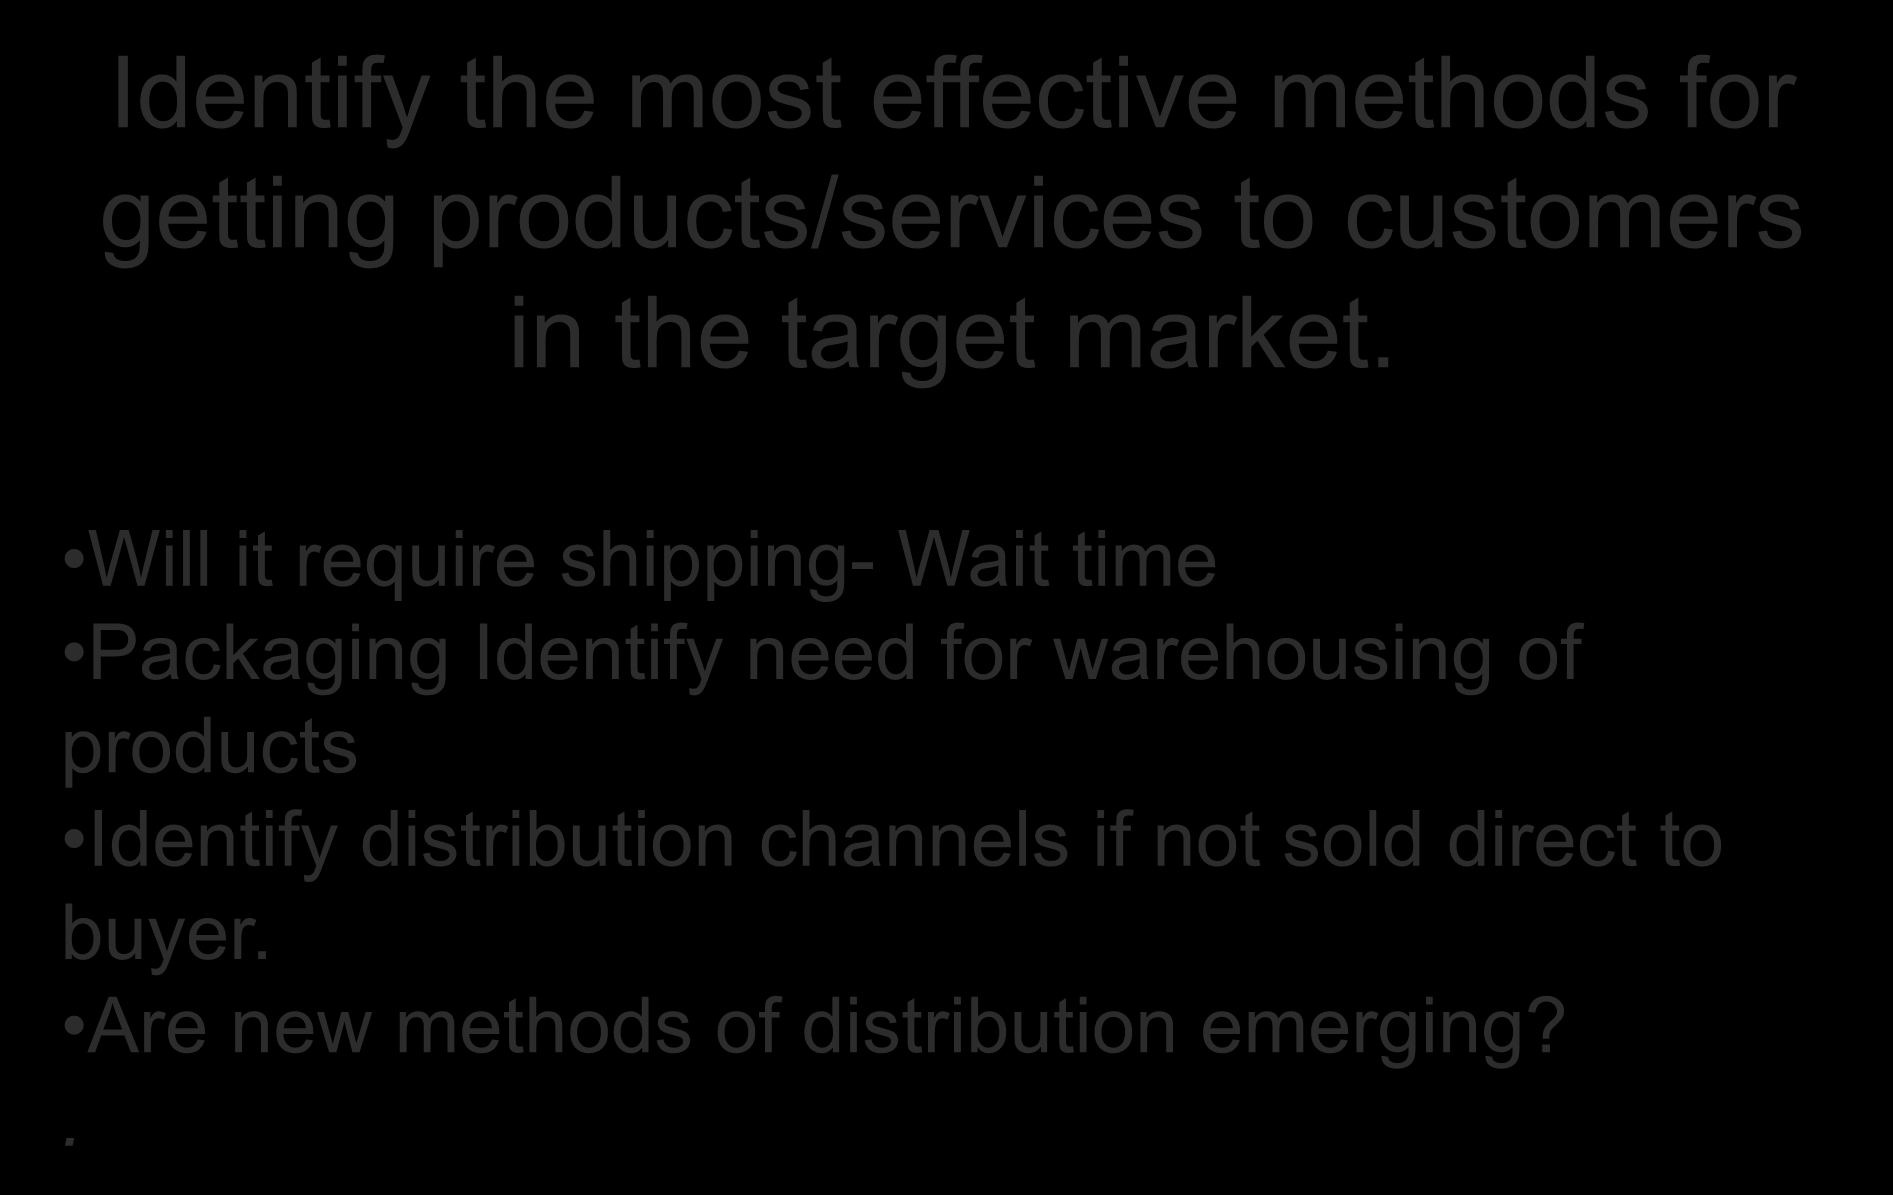 Product Distribution Identify the most effective methods for getting products/services to customers in the target market.